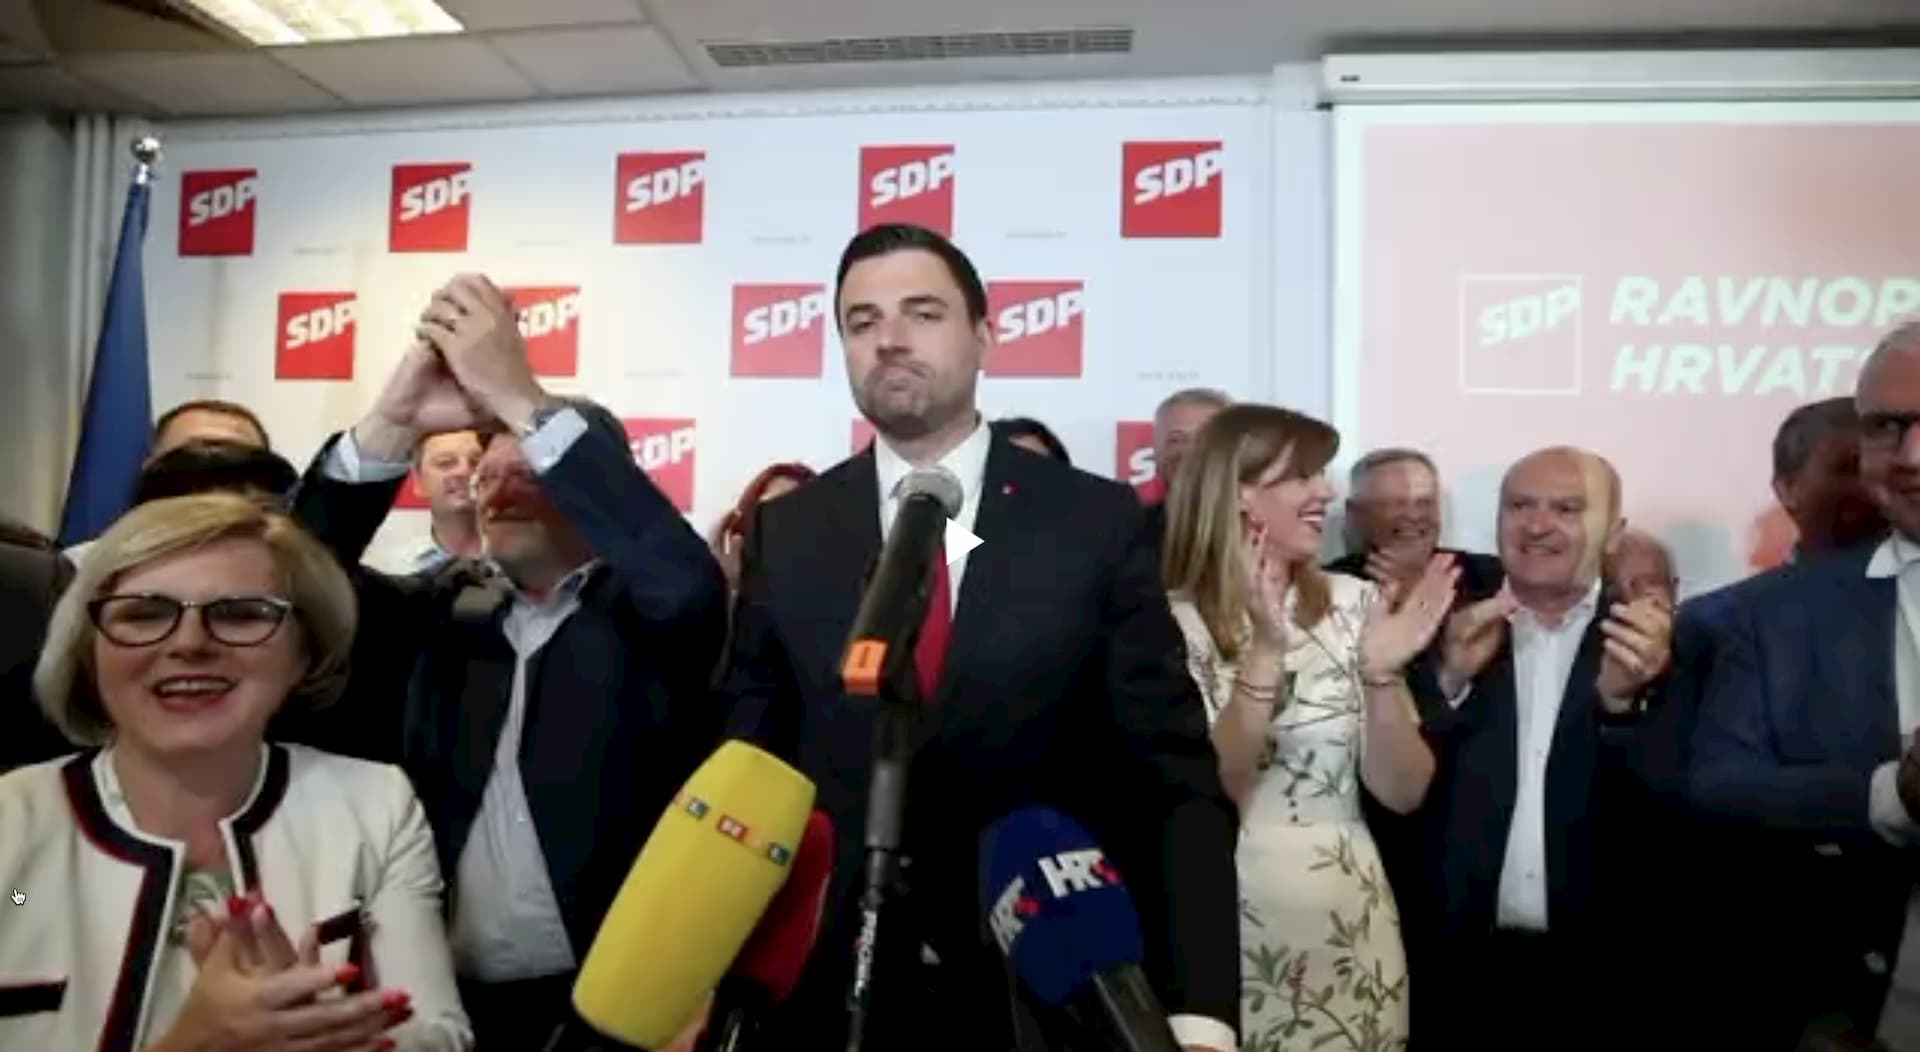 Davor Bernardić, SDP party leader, surrounded by supporters, celebrating good election results for social-democrats. HDZ vs. SDP rundown.